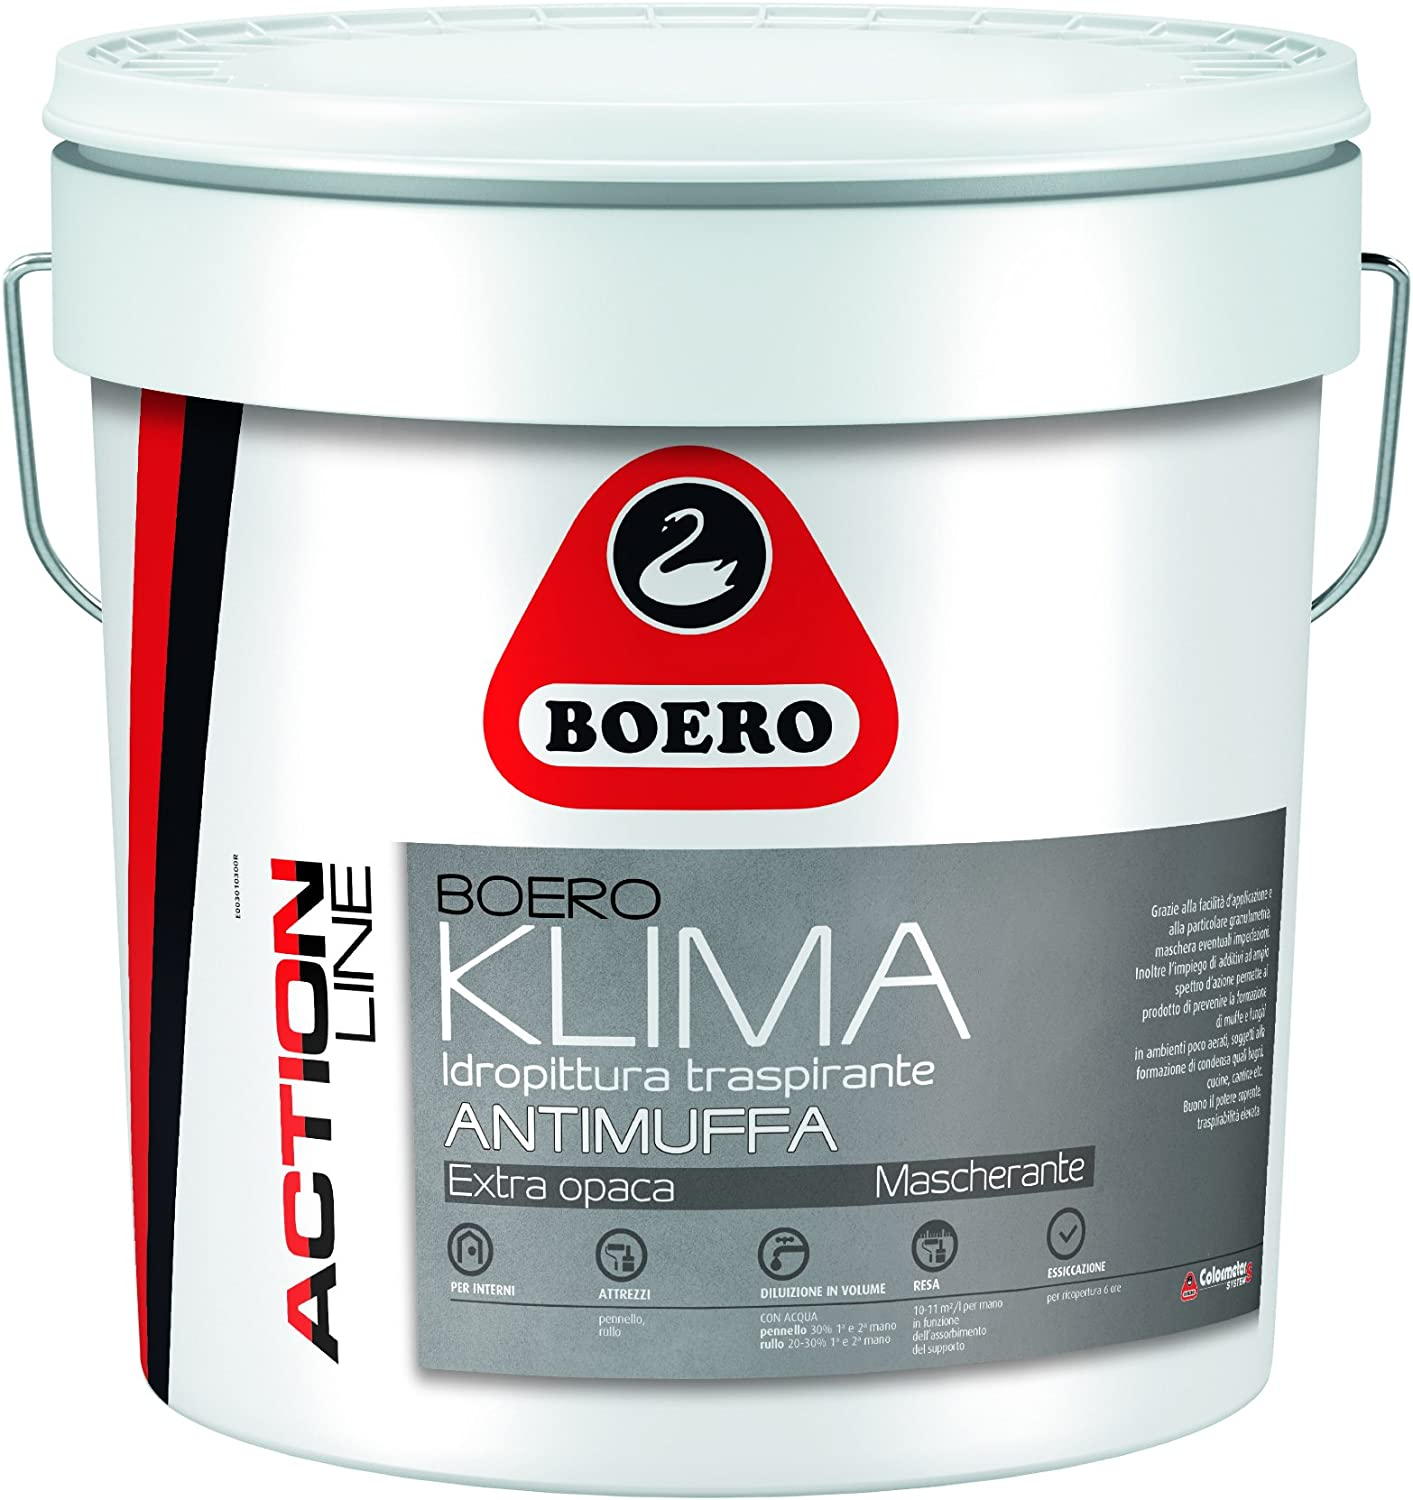 Pittura Per Interni Boero.Pittura Boeroklima Antimuffa Lt 14 Boero Amazon It Fai Da Te